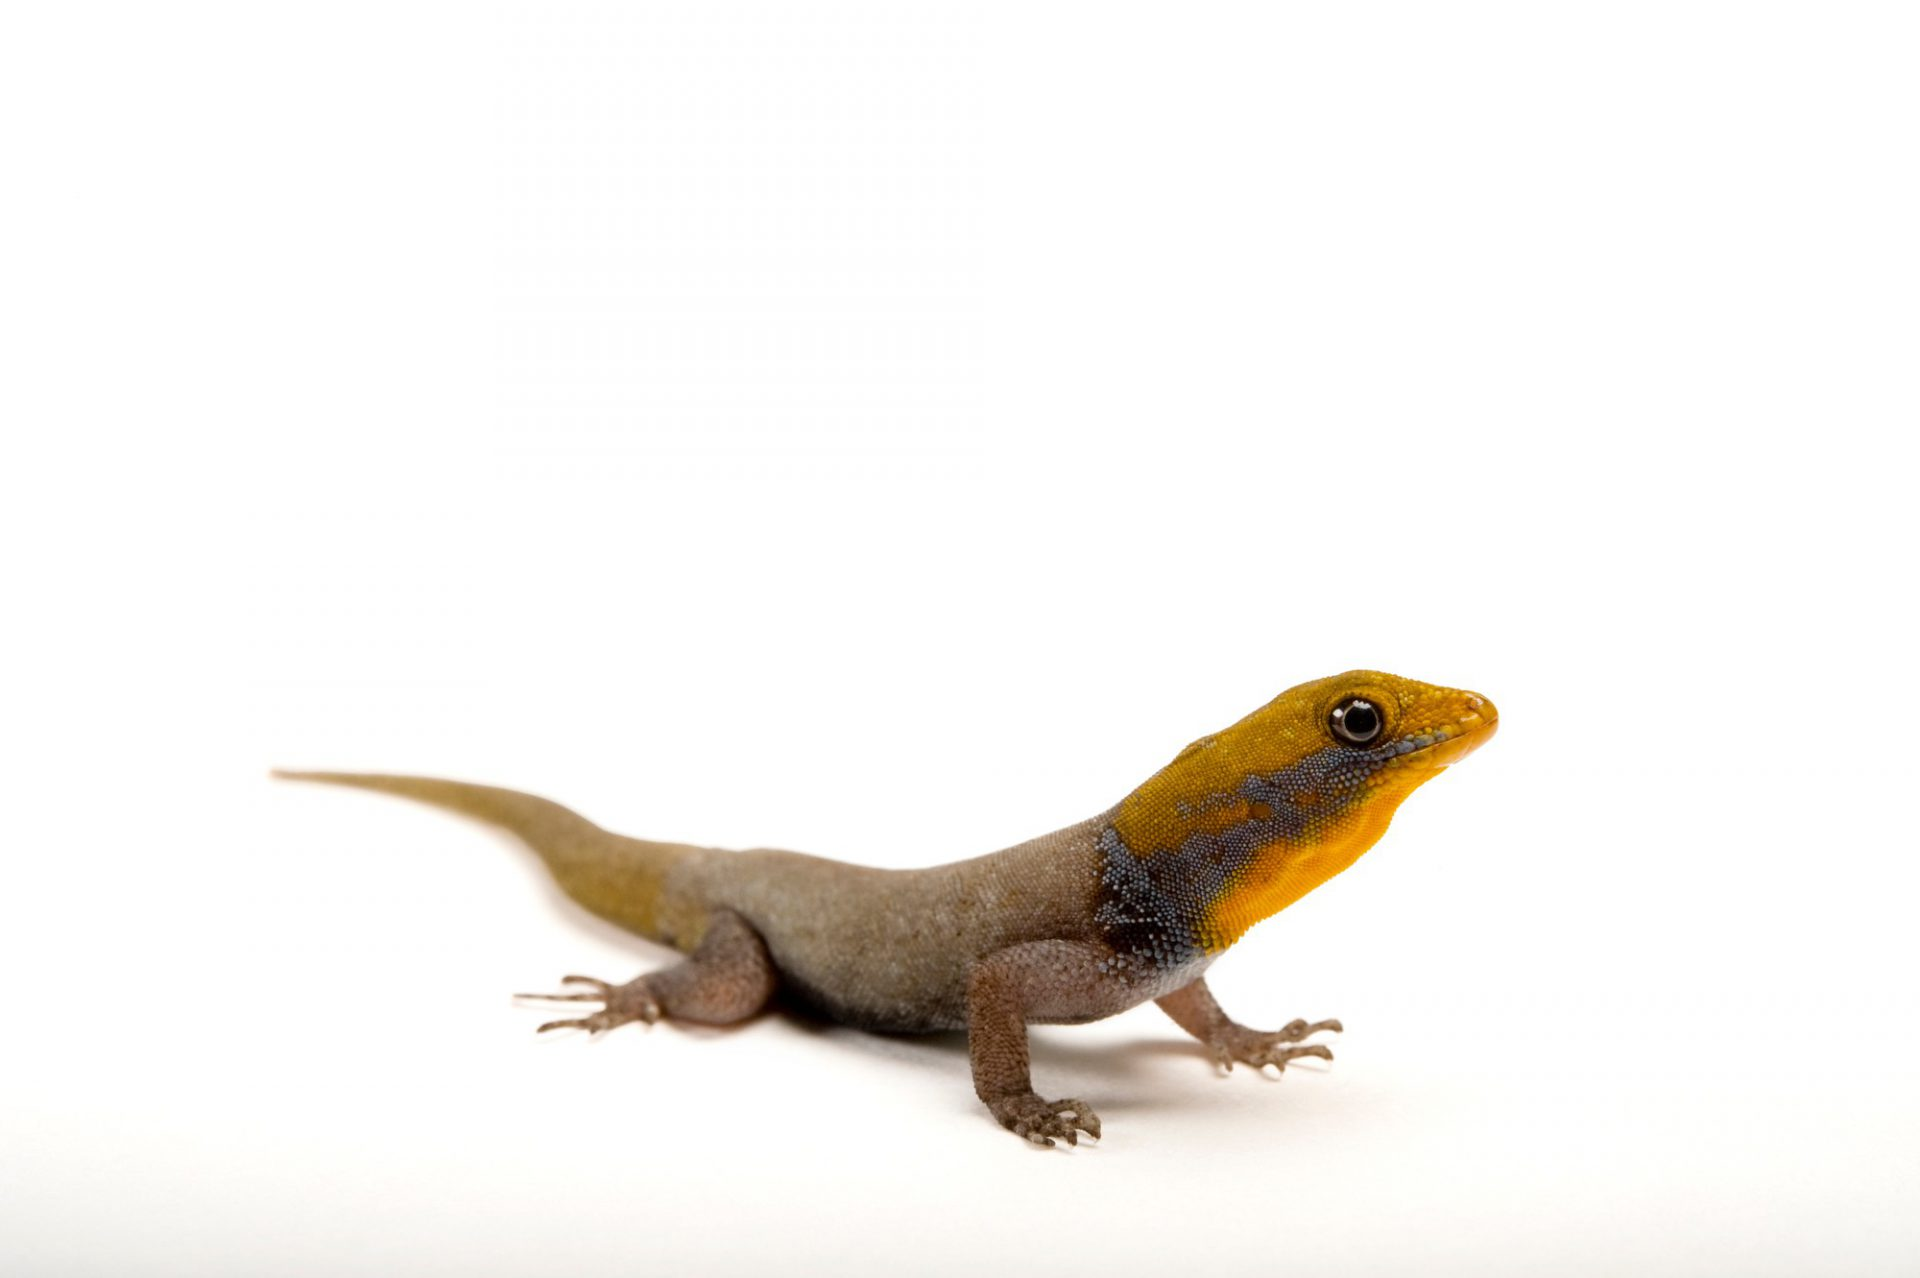 A yellow-headed gecko (Gonatodes albogularis) from a private collection.